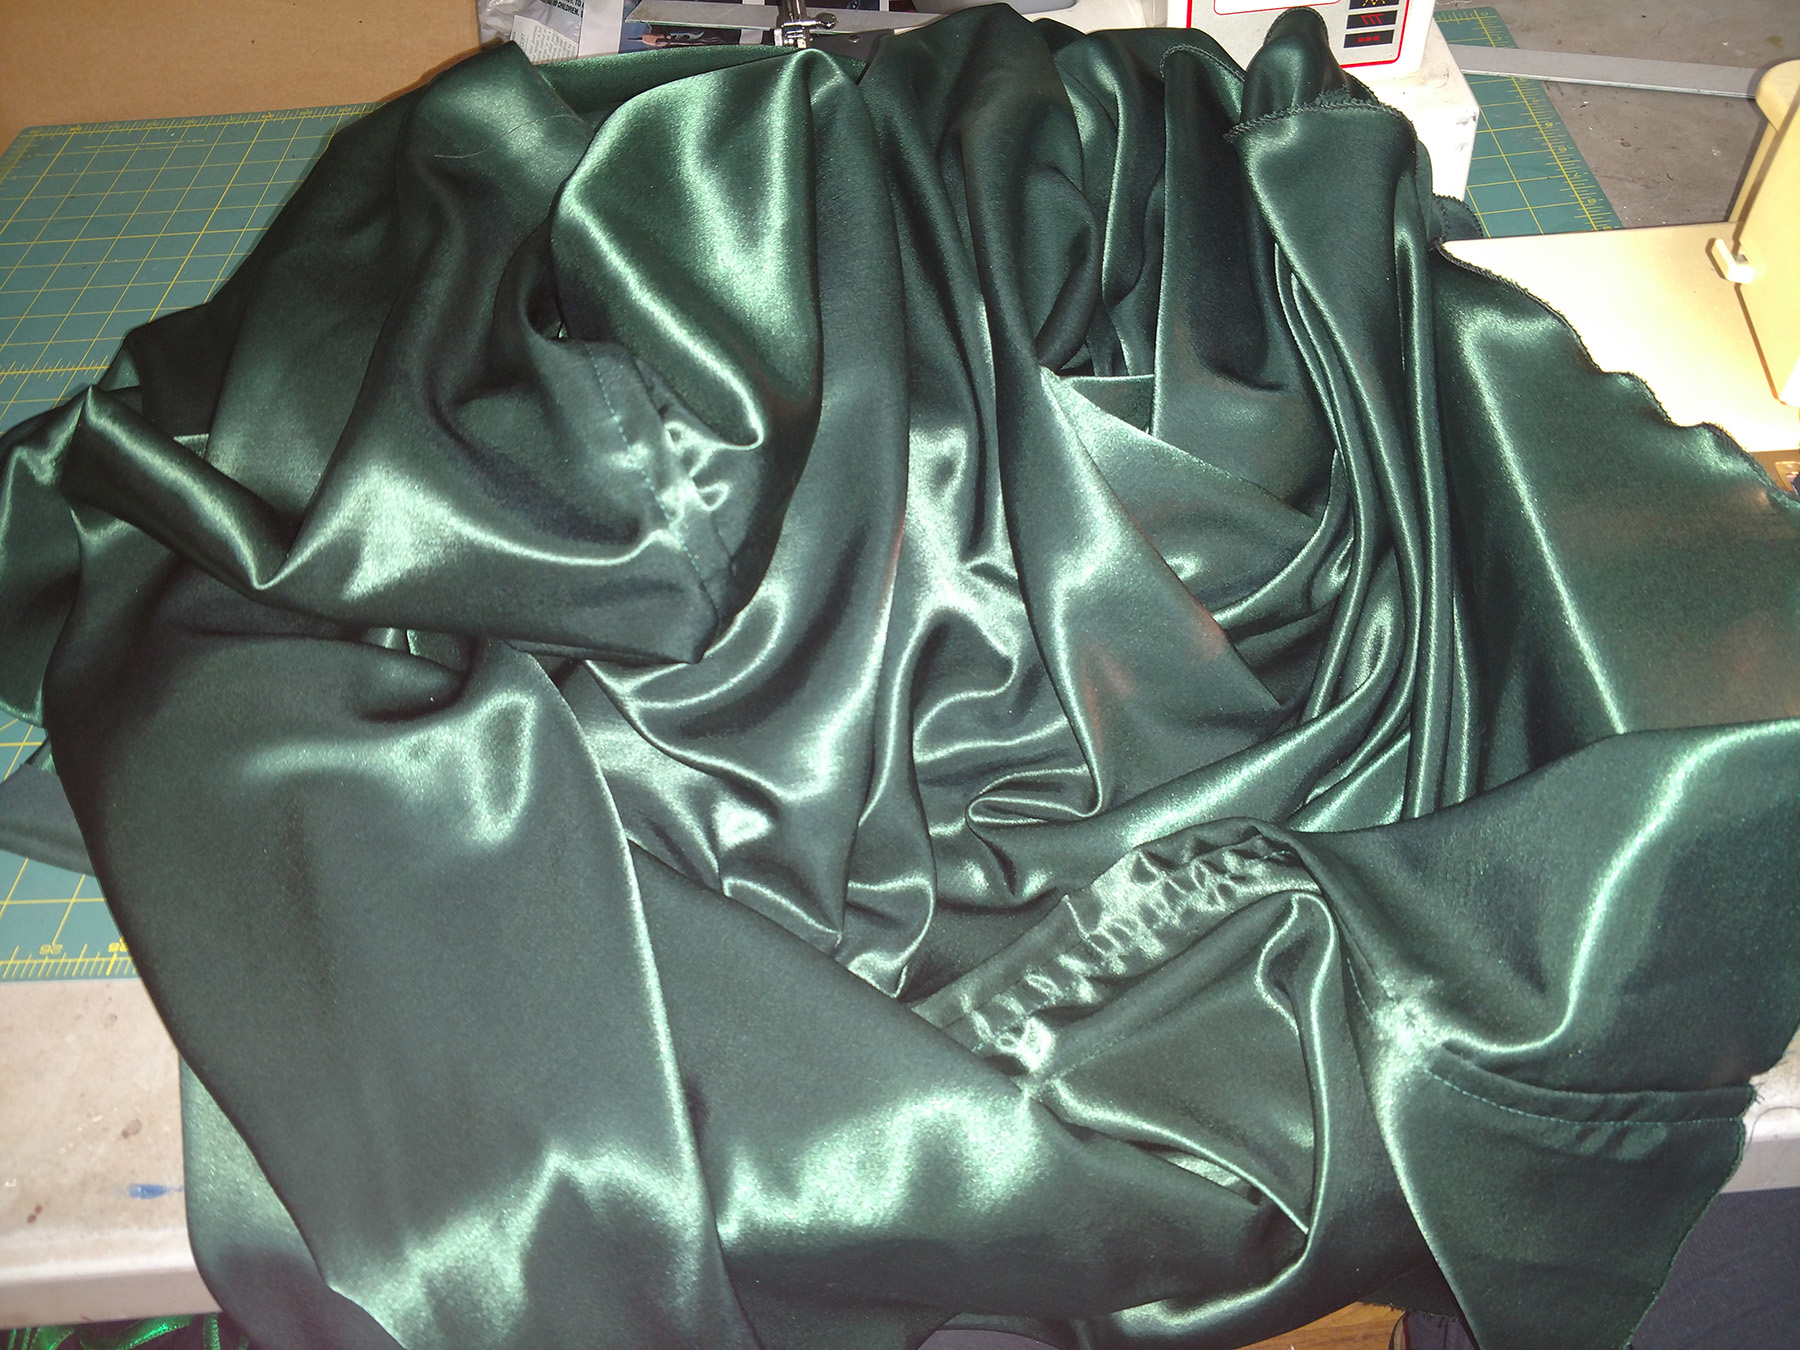 A large green satin cape is bunched up at a sewing machine.